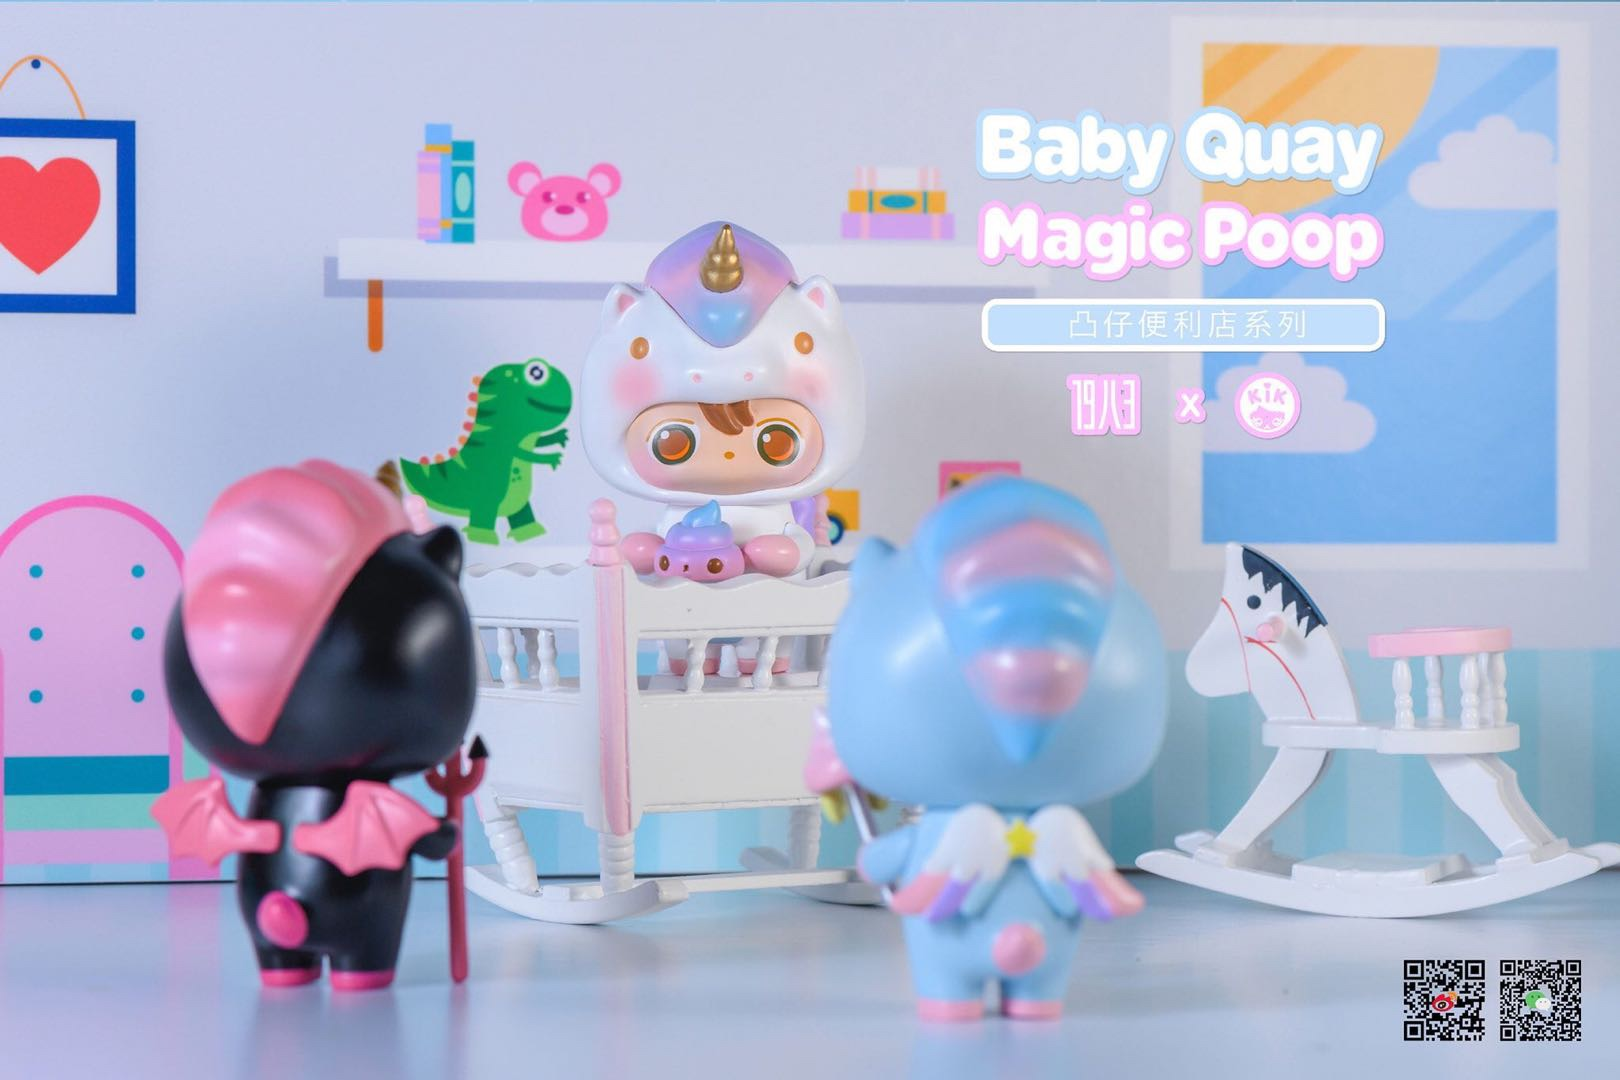 Baby Quay Magic Poop By Kik Toyz x 19八3